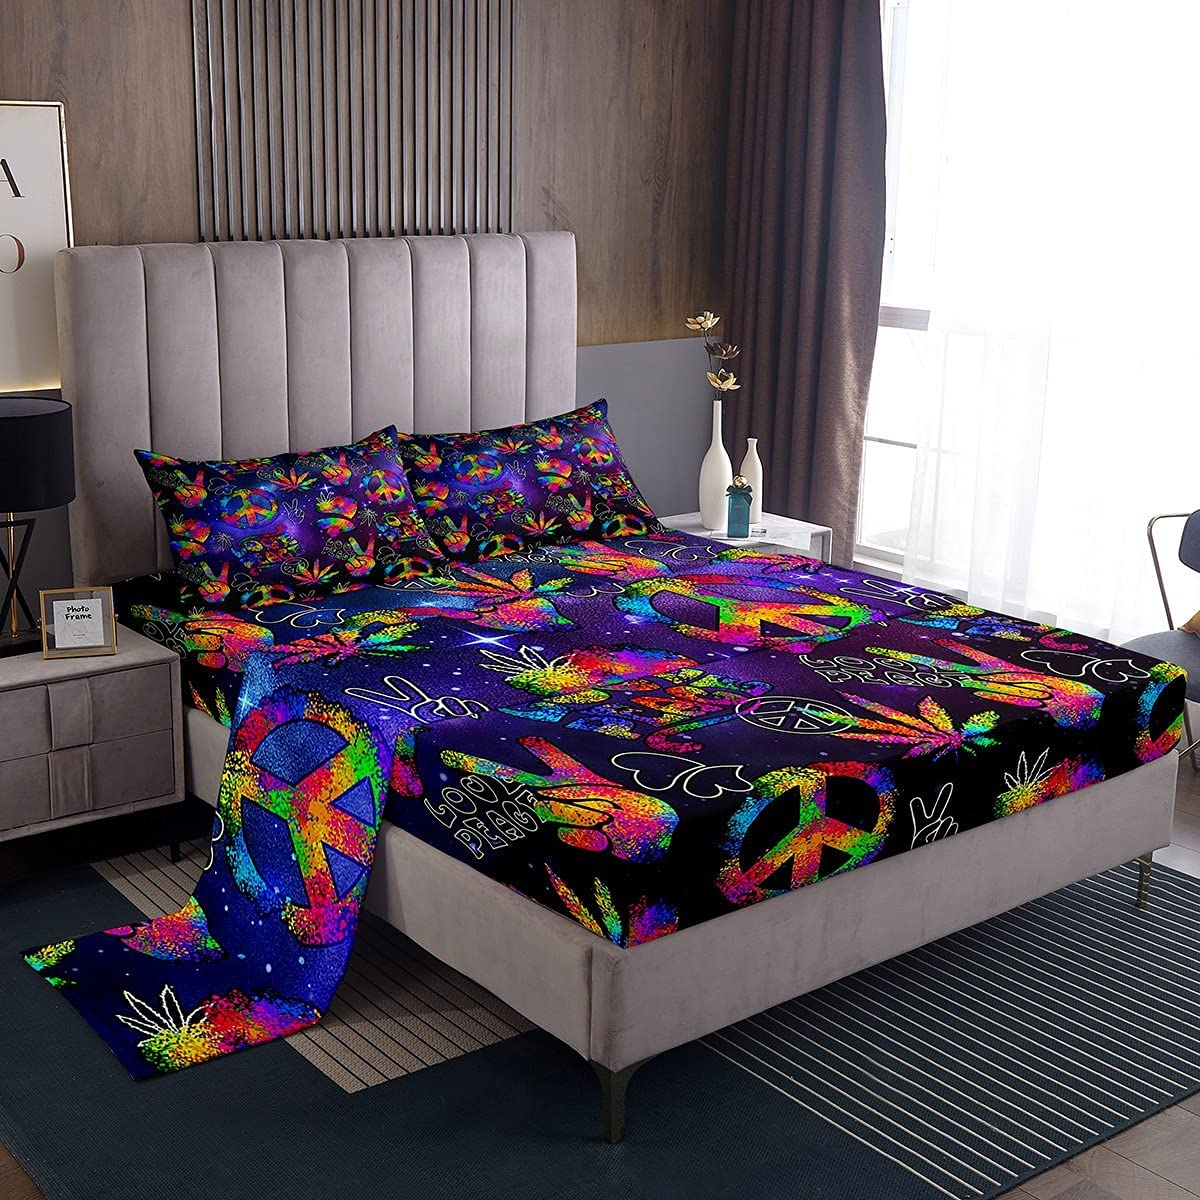 Cannabis Max 60% 5 popular OFF Leaves Bedding Sets Love Colorful Fitted Sheet Ma Peace